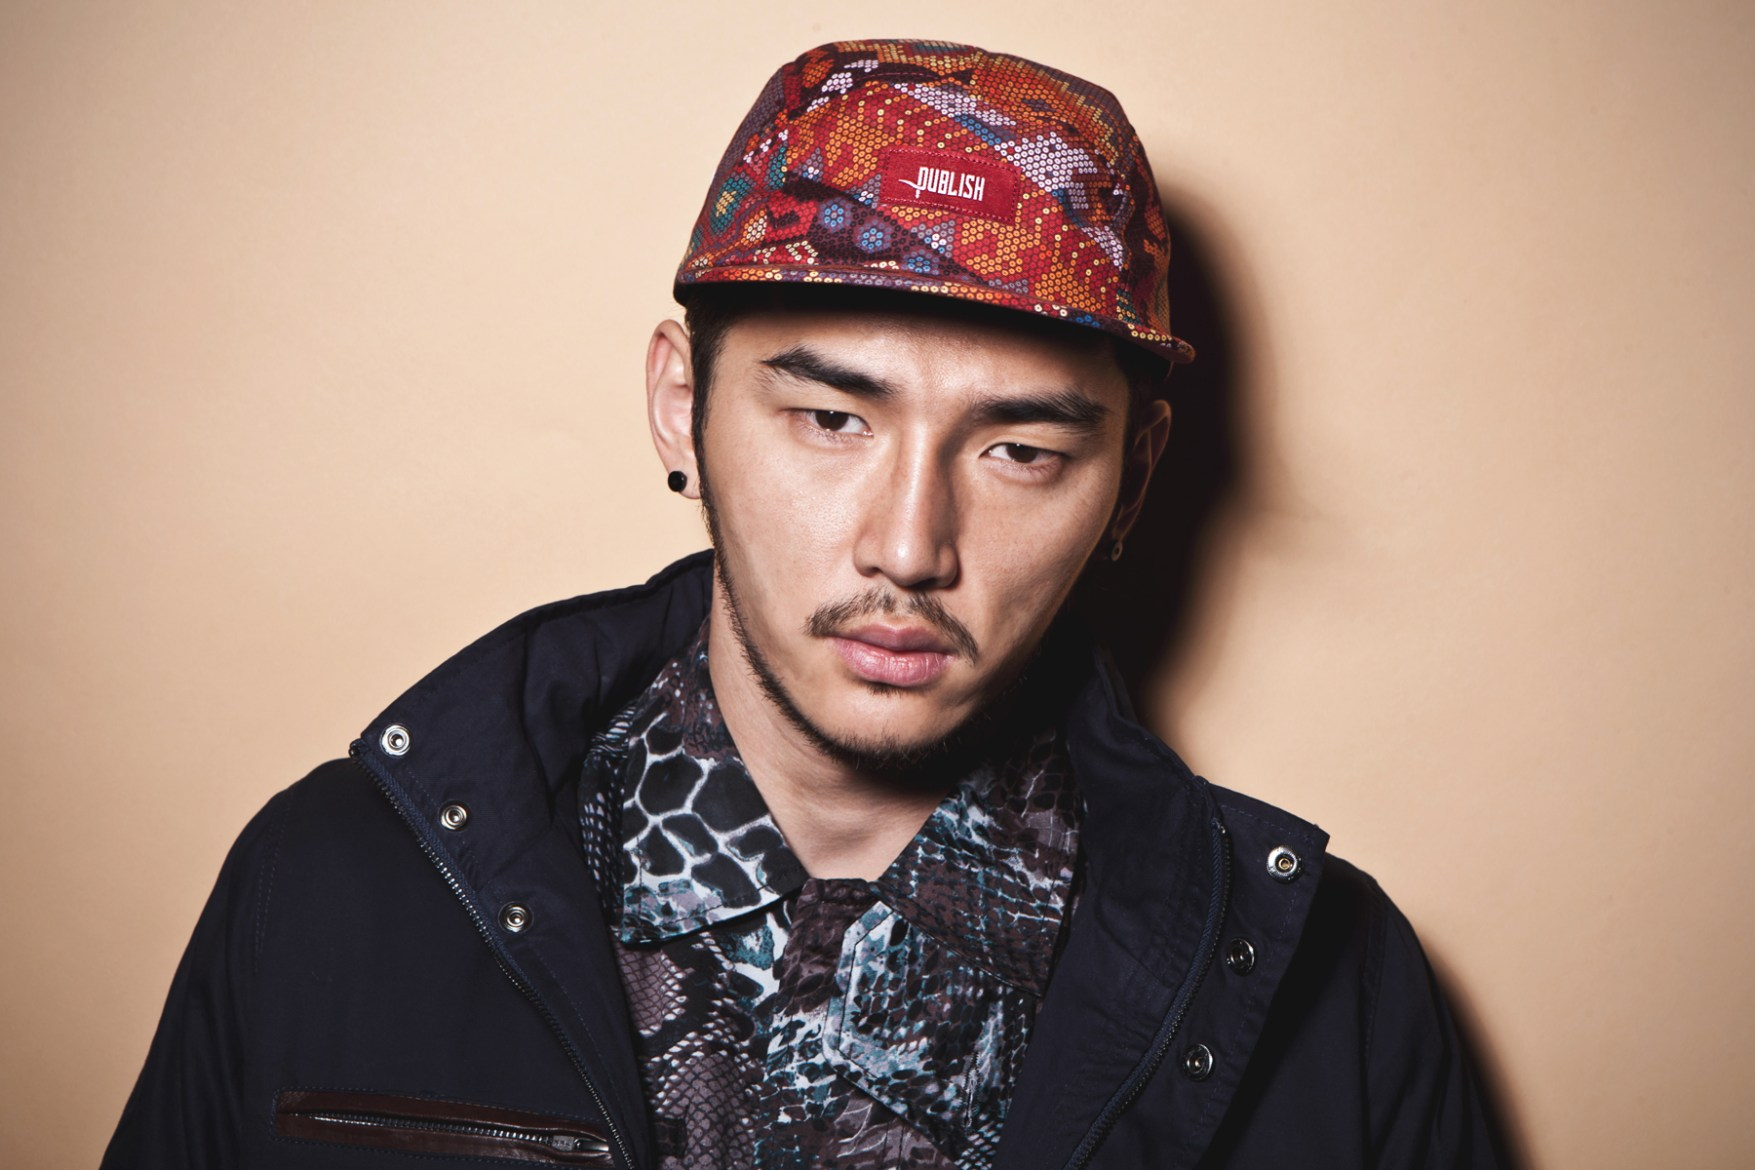 Publish 2013 Holiday Headwear Collection